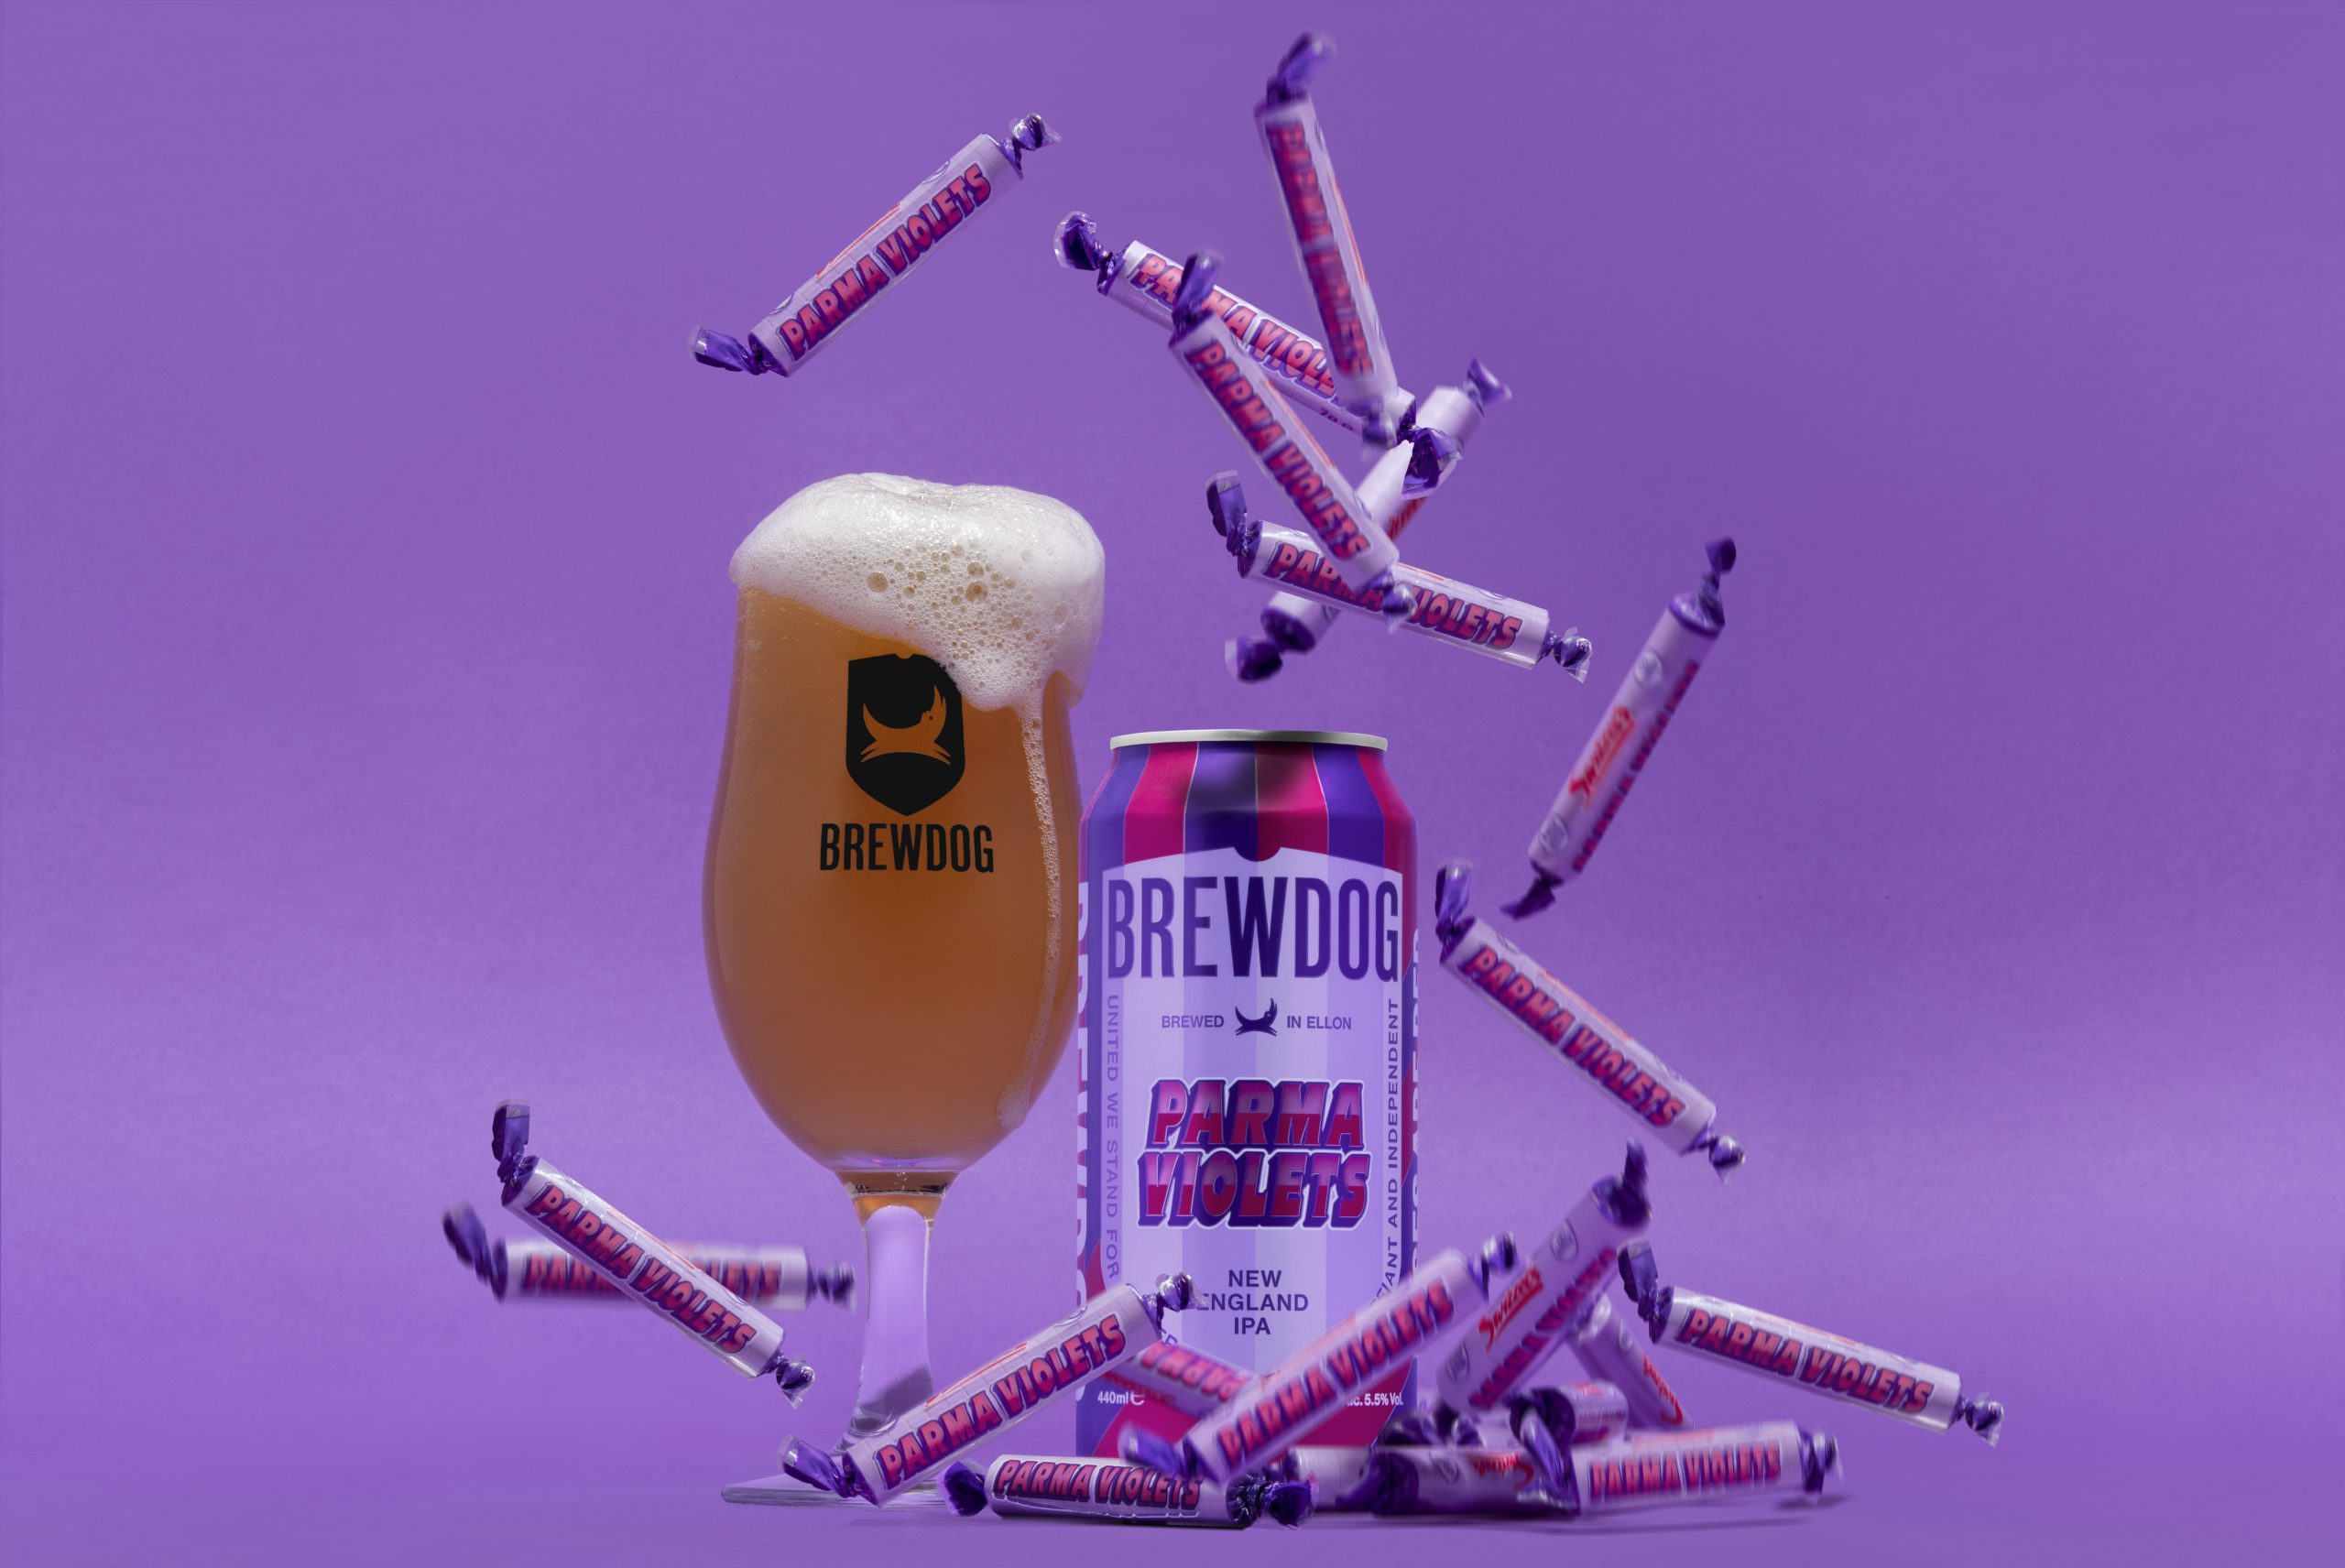 Can and glass of new Parme Violet beer: BrewDog launches Parma Violet flavoured beer